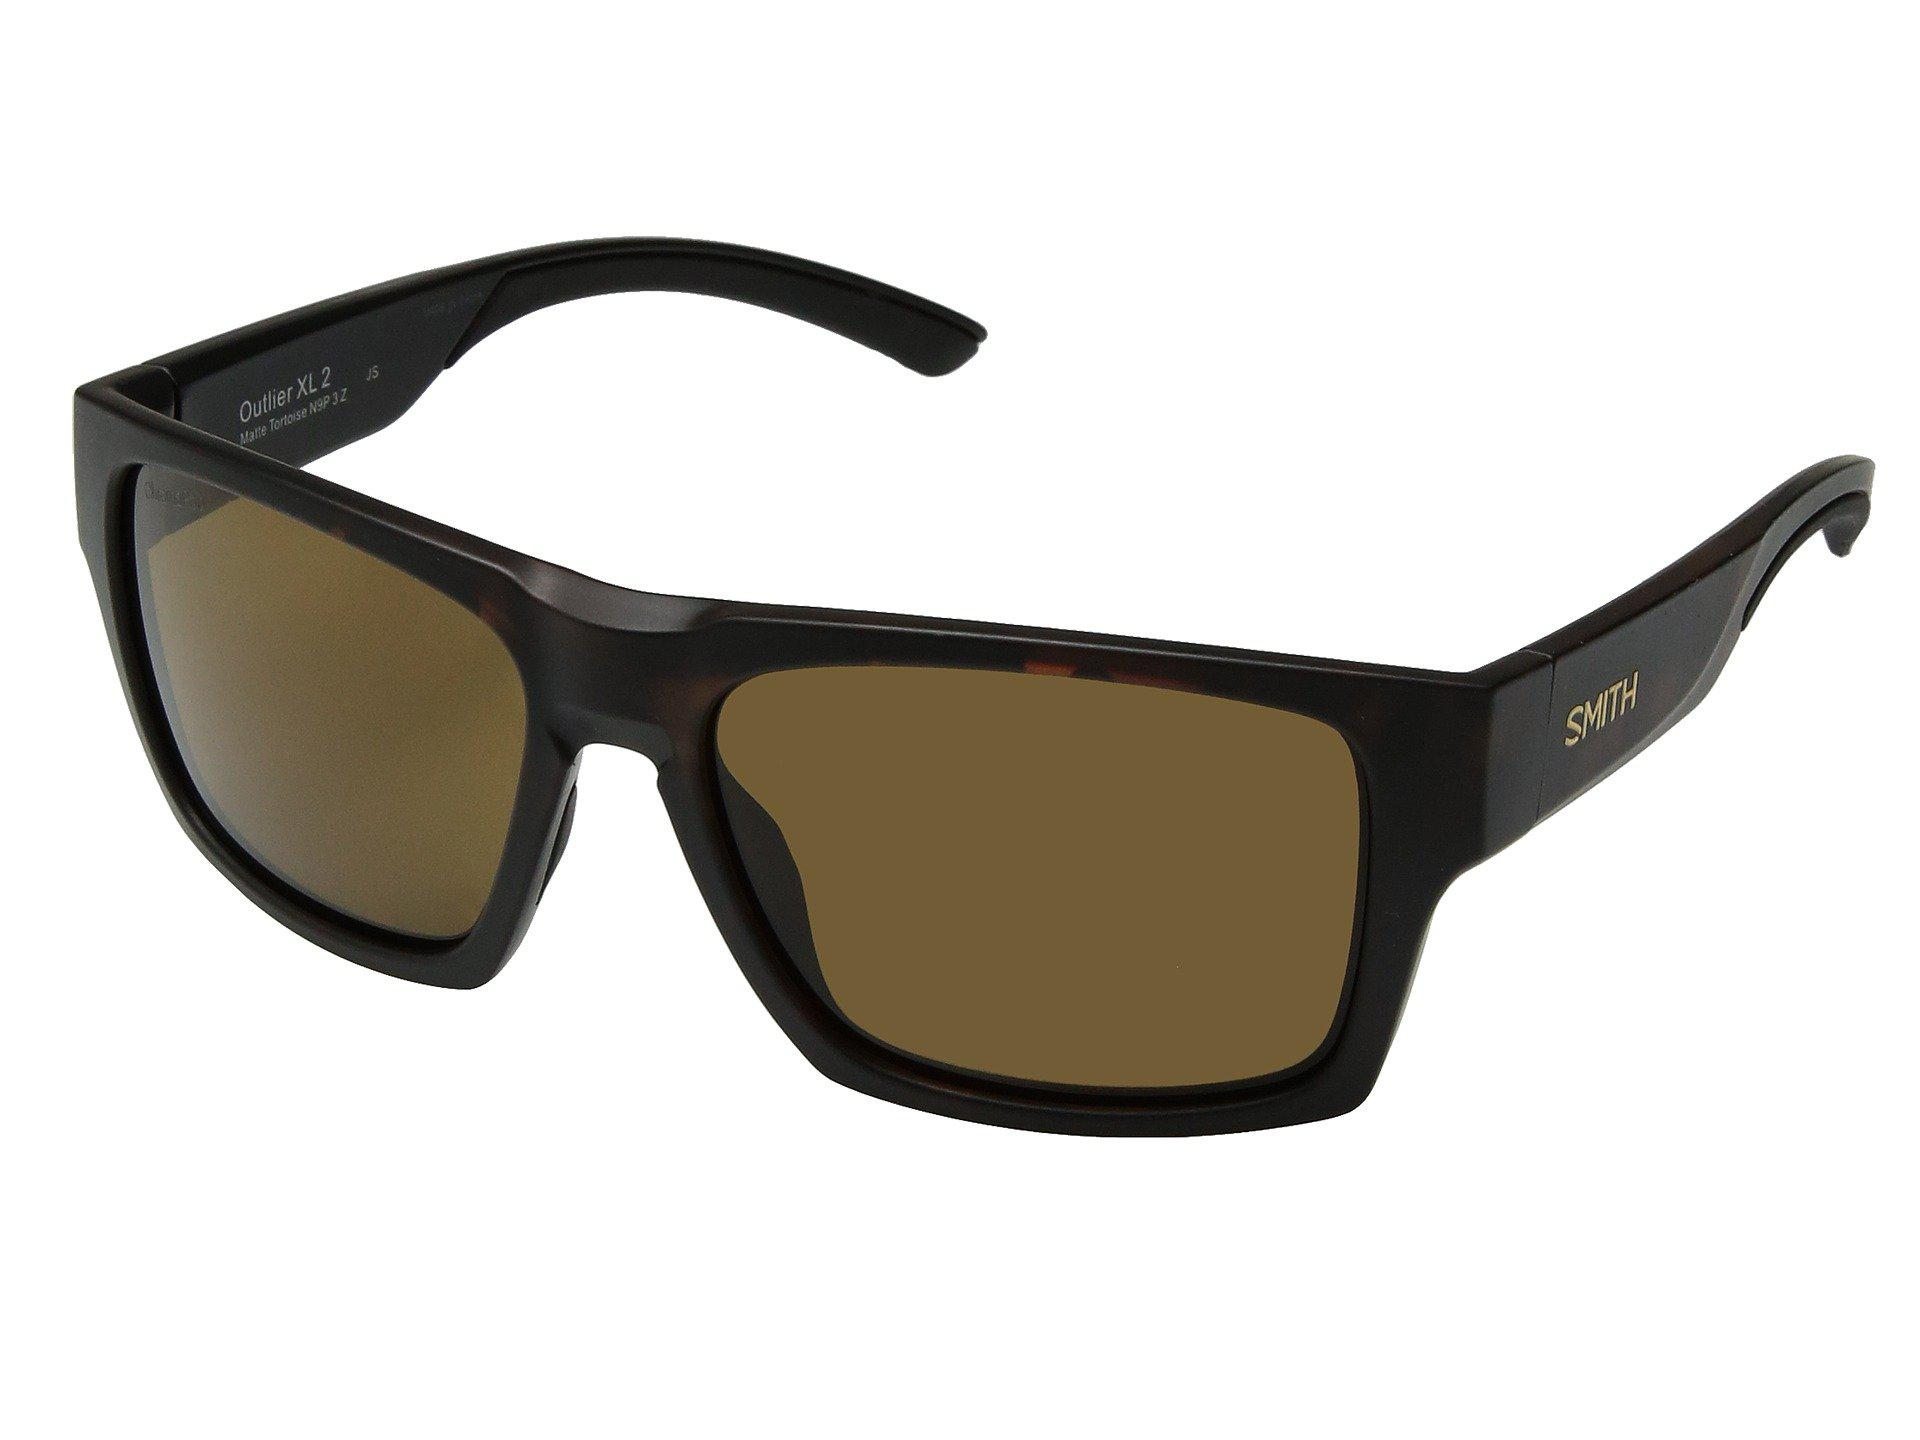 b3f0806918 Smith Optics. Women s Brown Outlier 2 Xl (matte Black gray Green  Chromapoptm Polarized Lens) Athletic Performance Sport Sunglasses